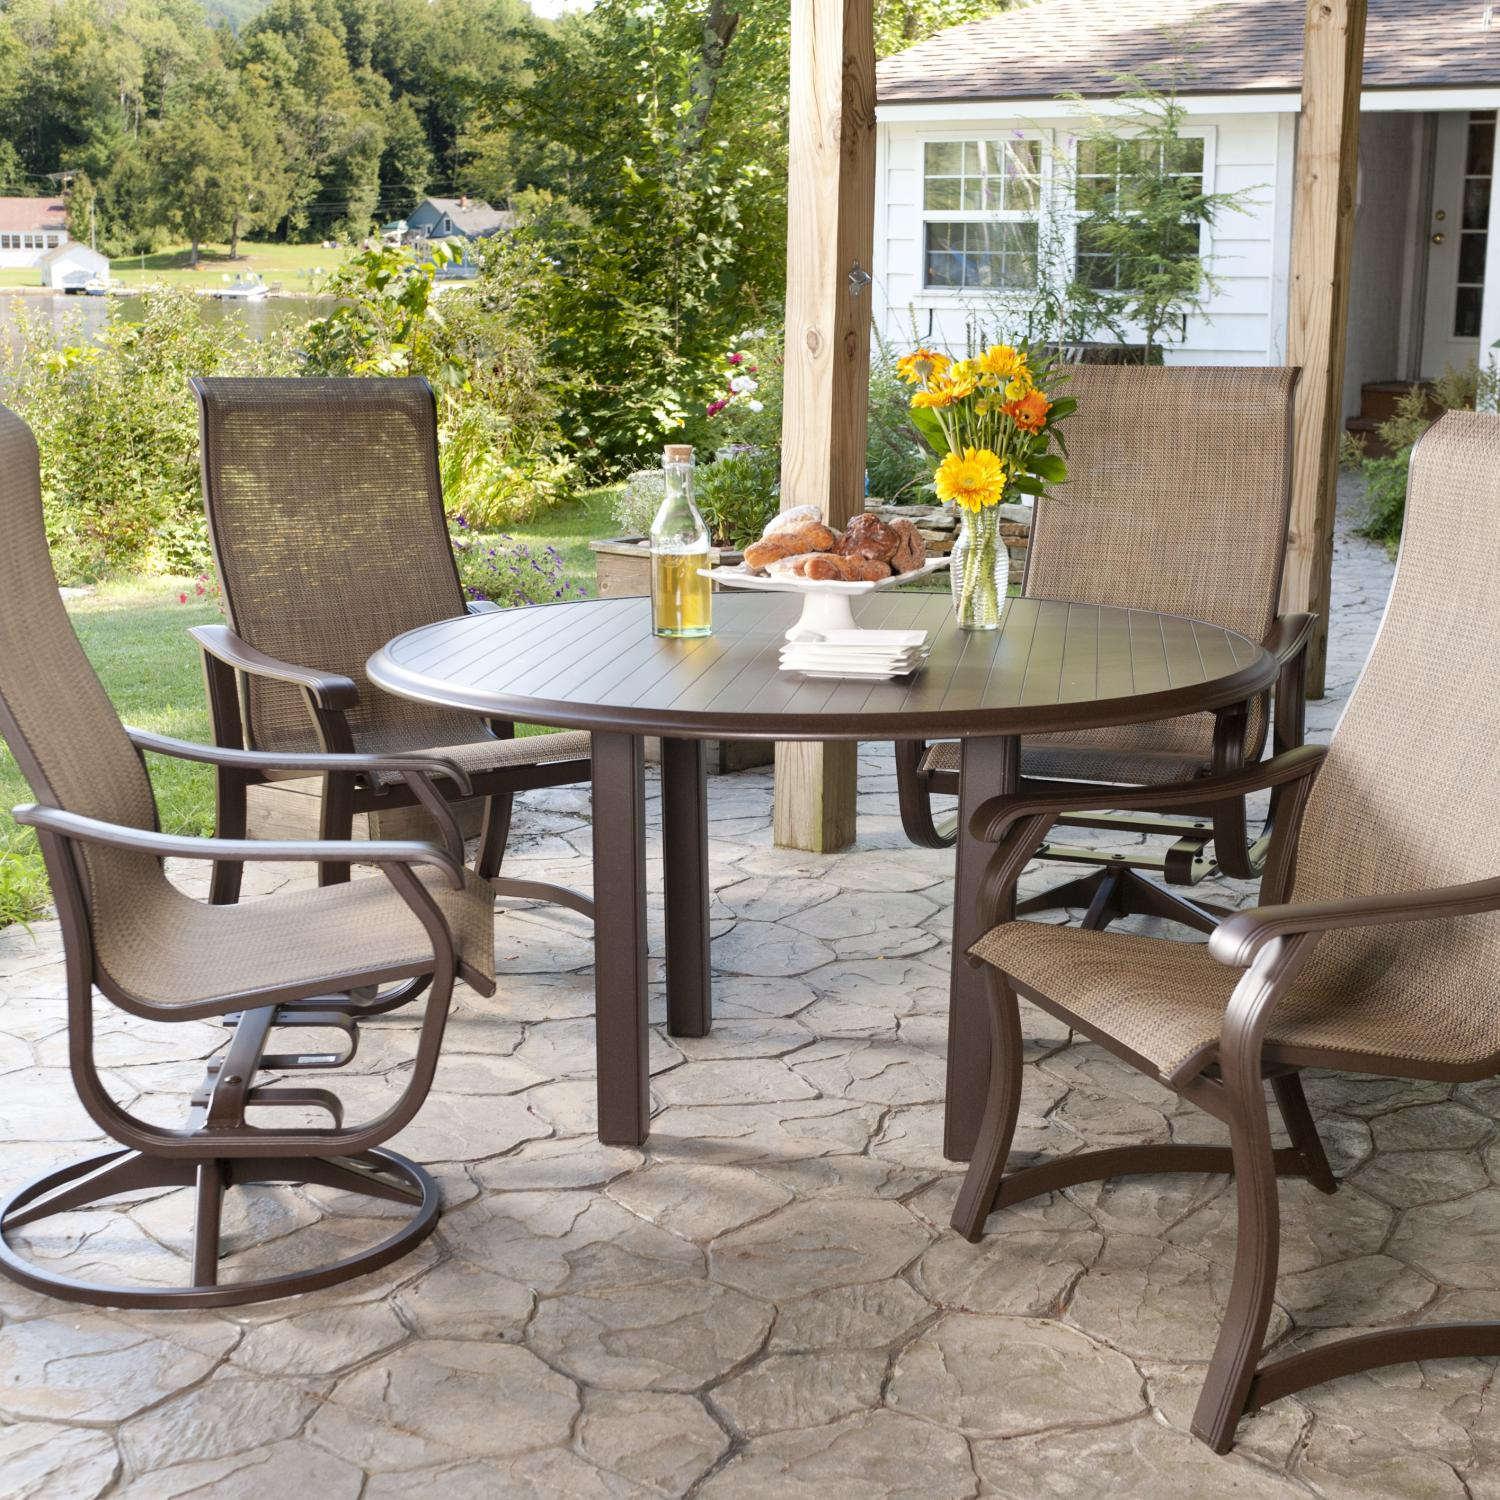 Patio dining sets sale creativity for Outdoor tables and chairs for sale